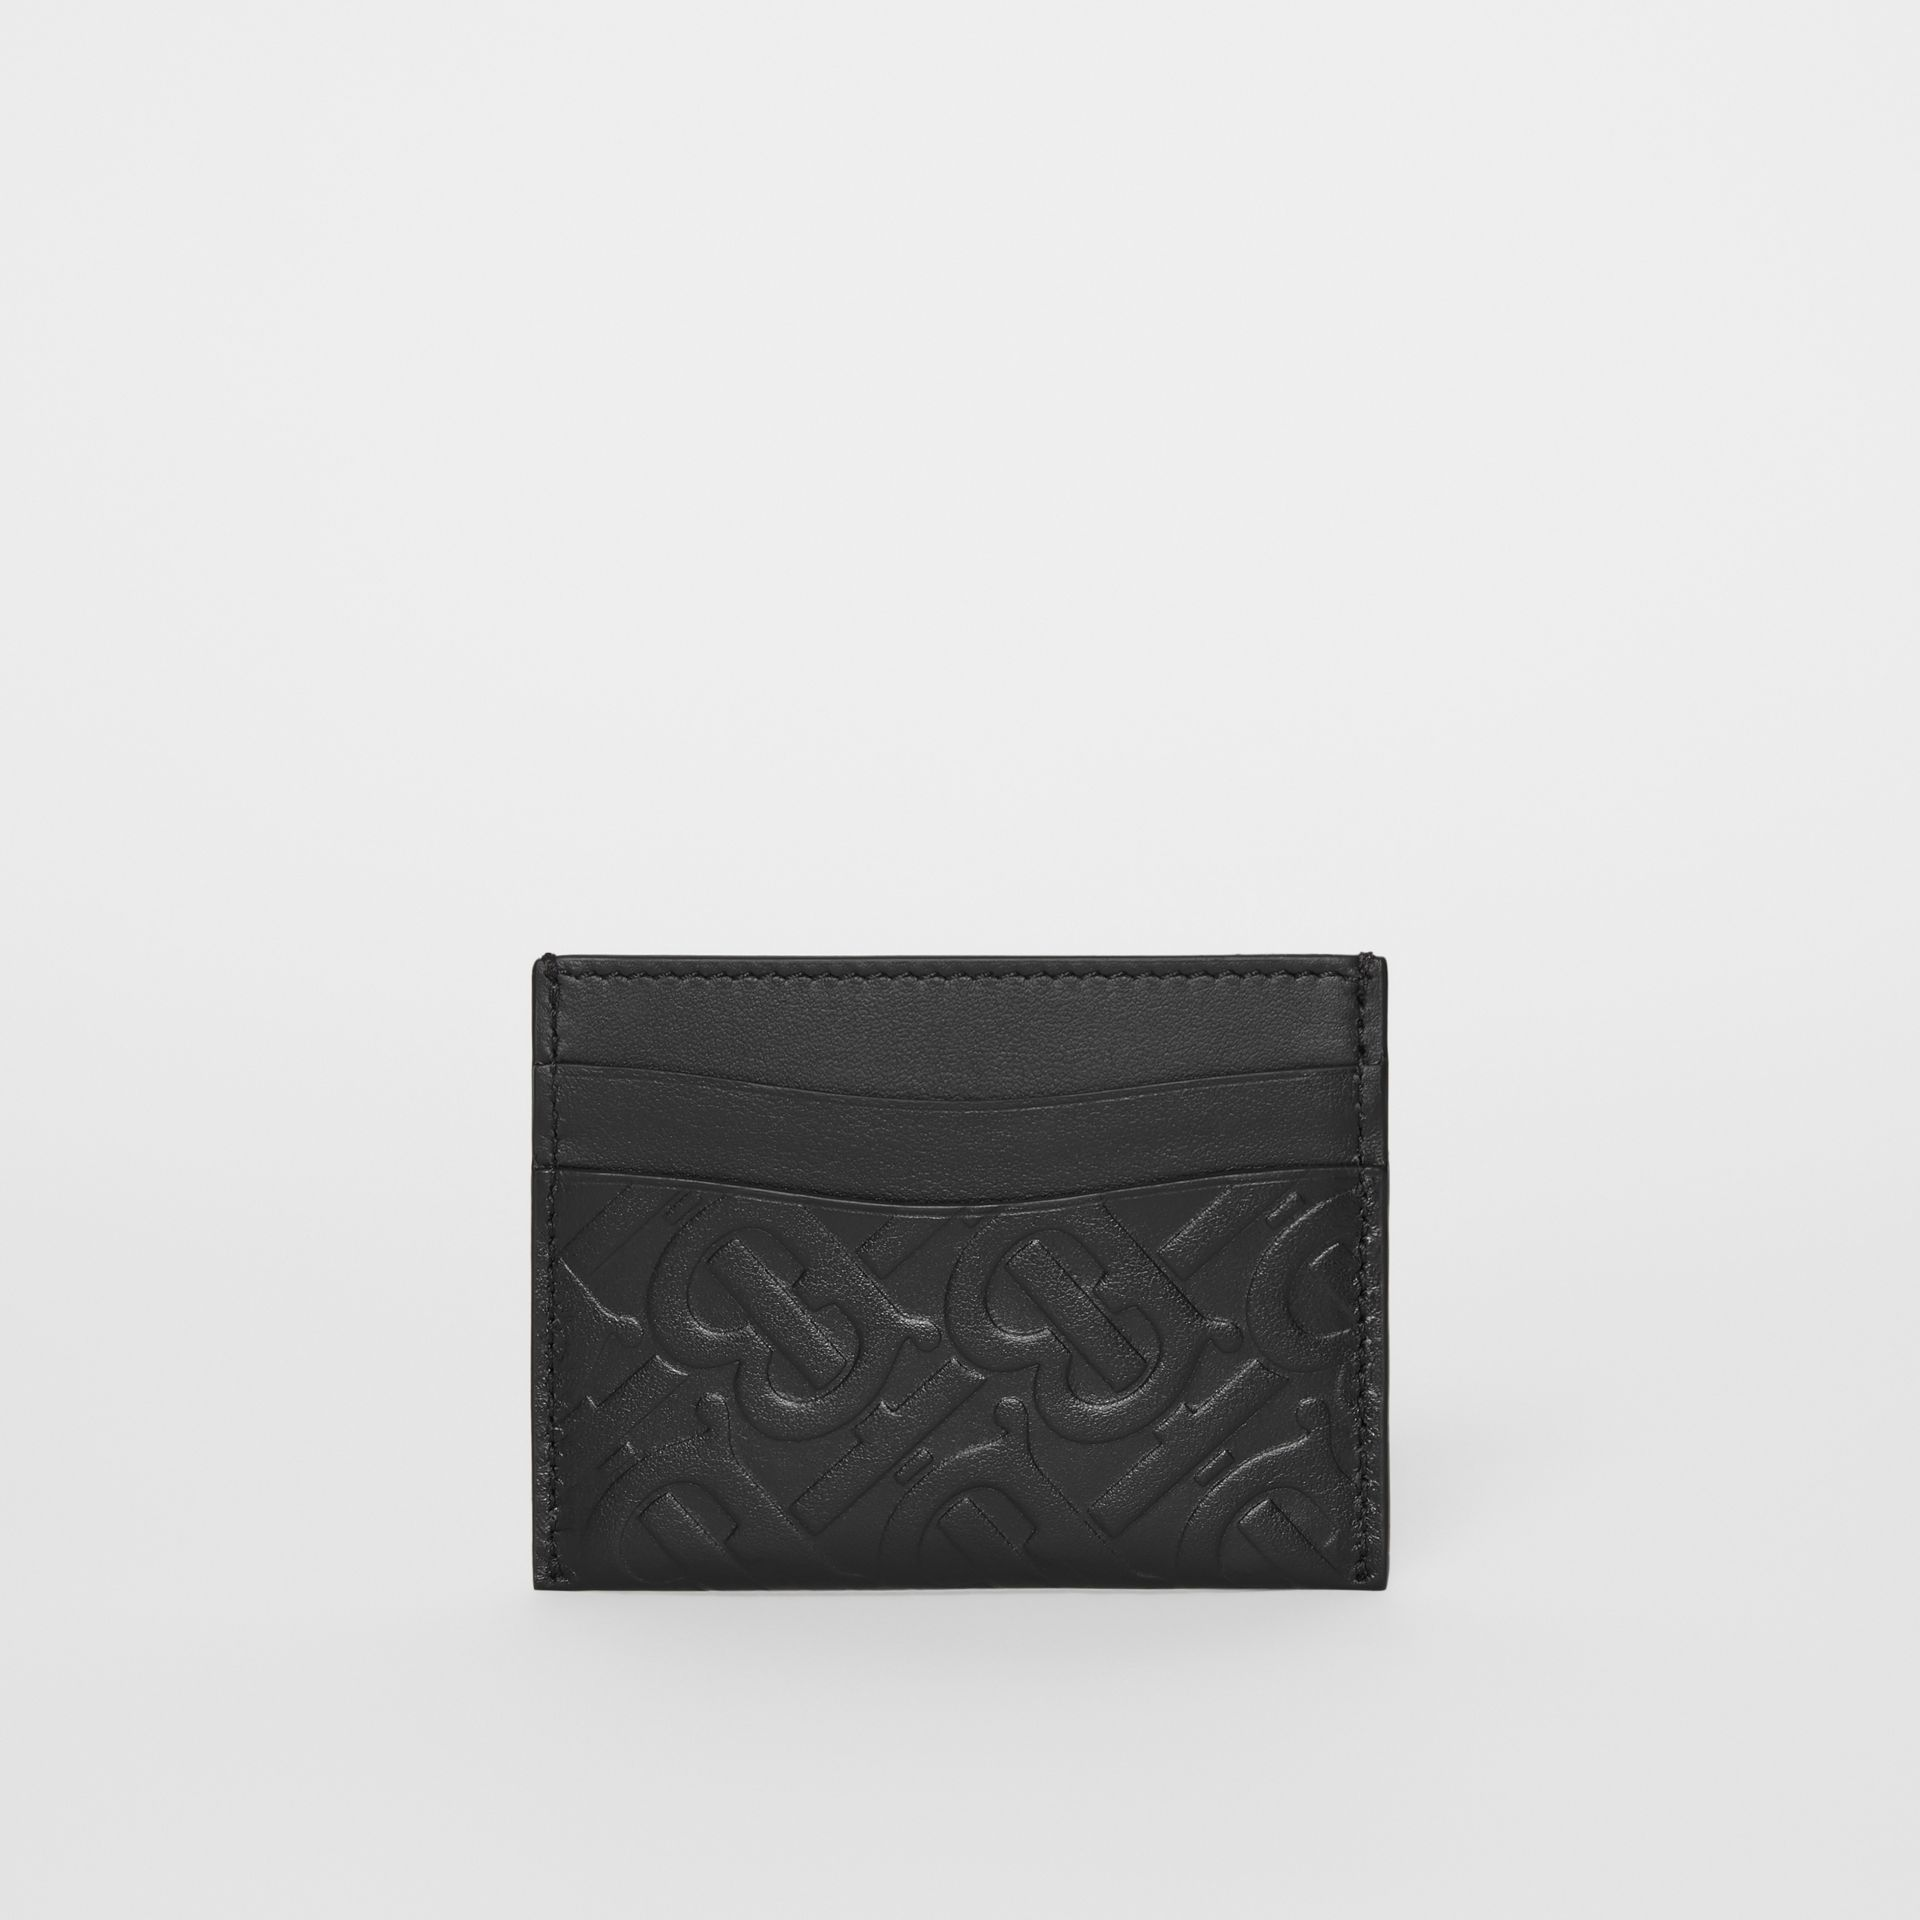 Monogram Leather Card Case in Black - Women | Burberry Canada - gallery image 4